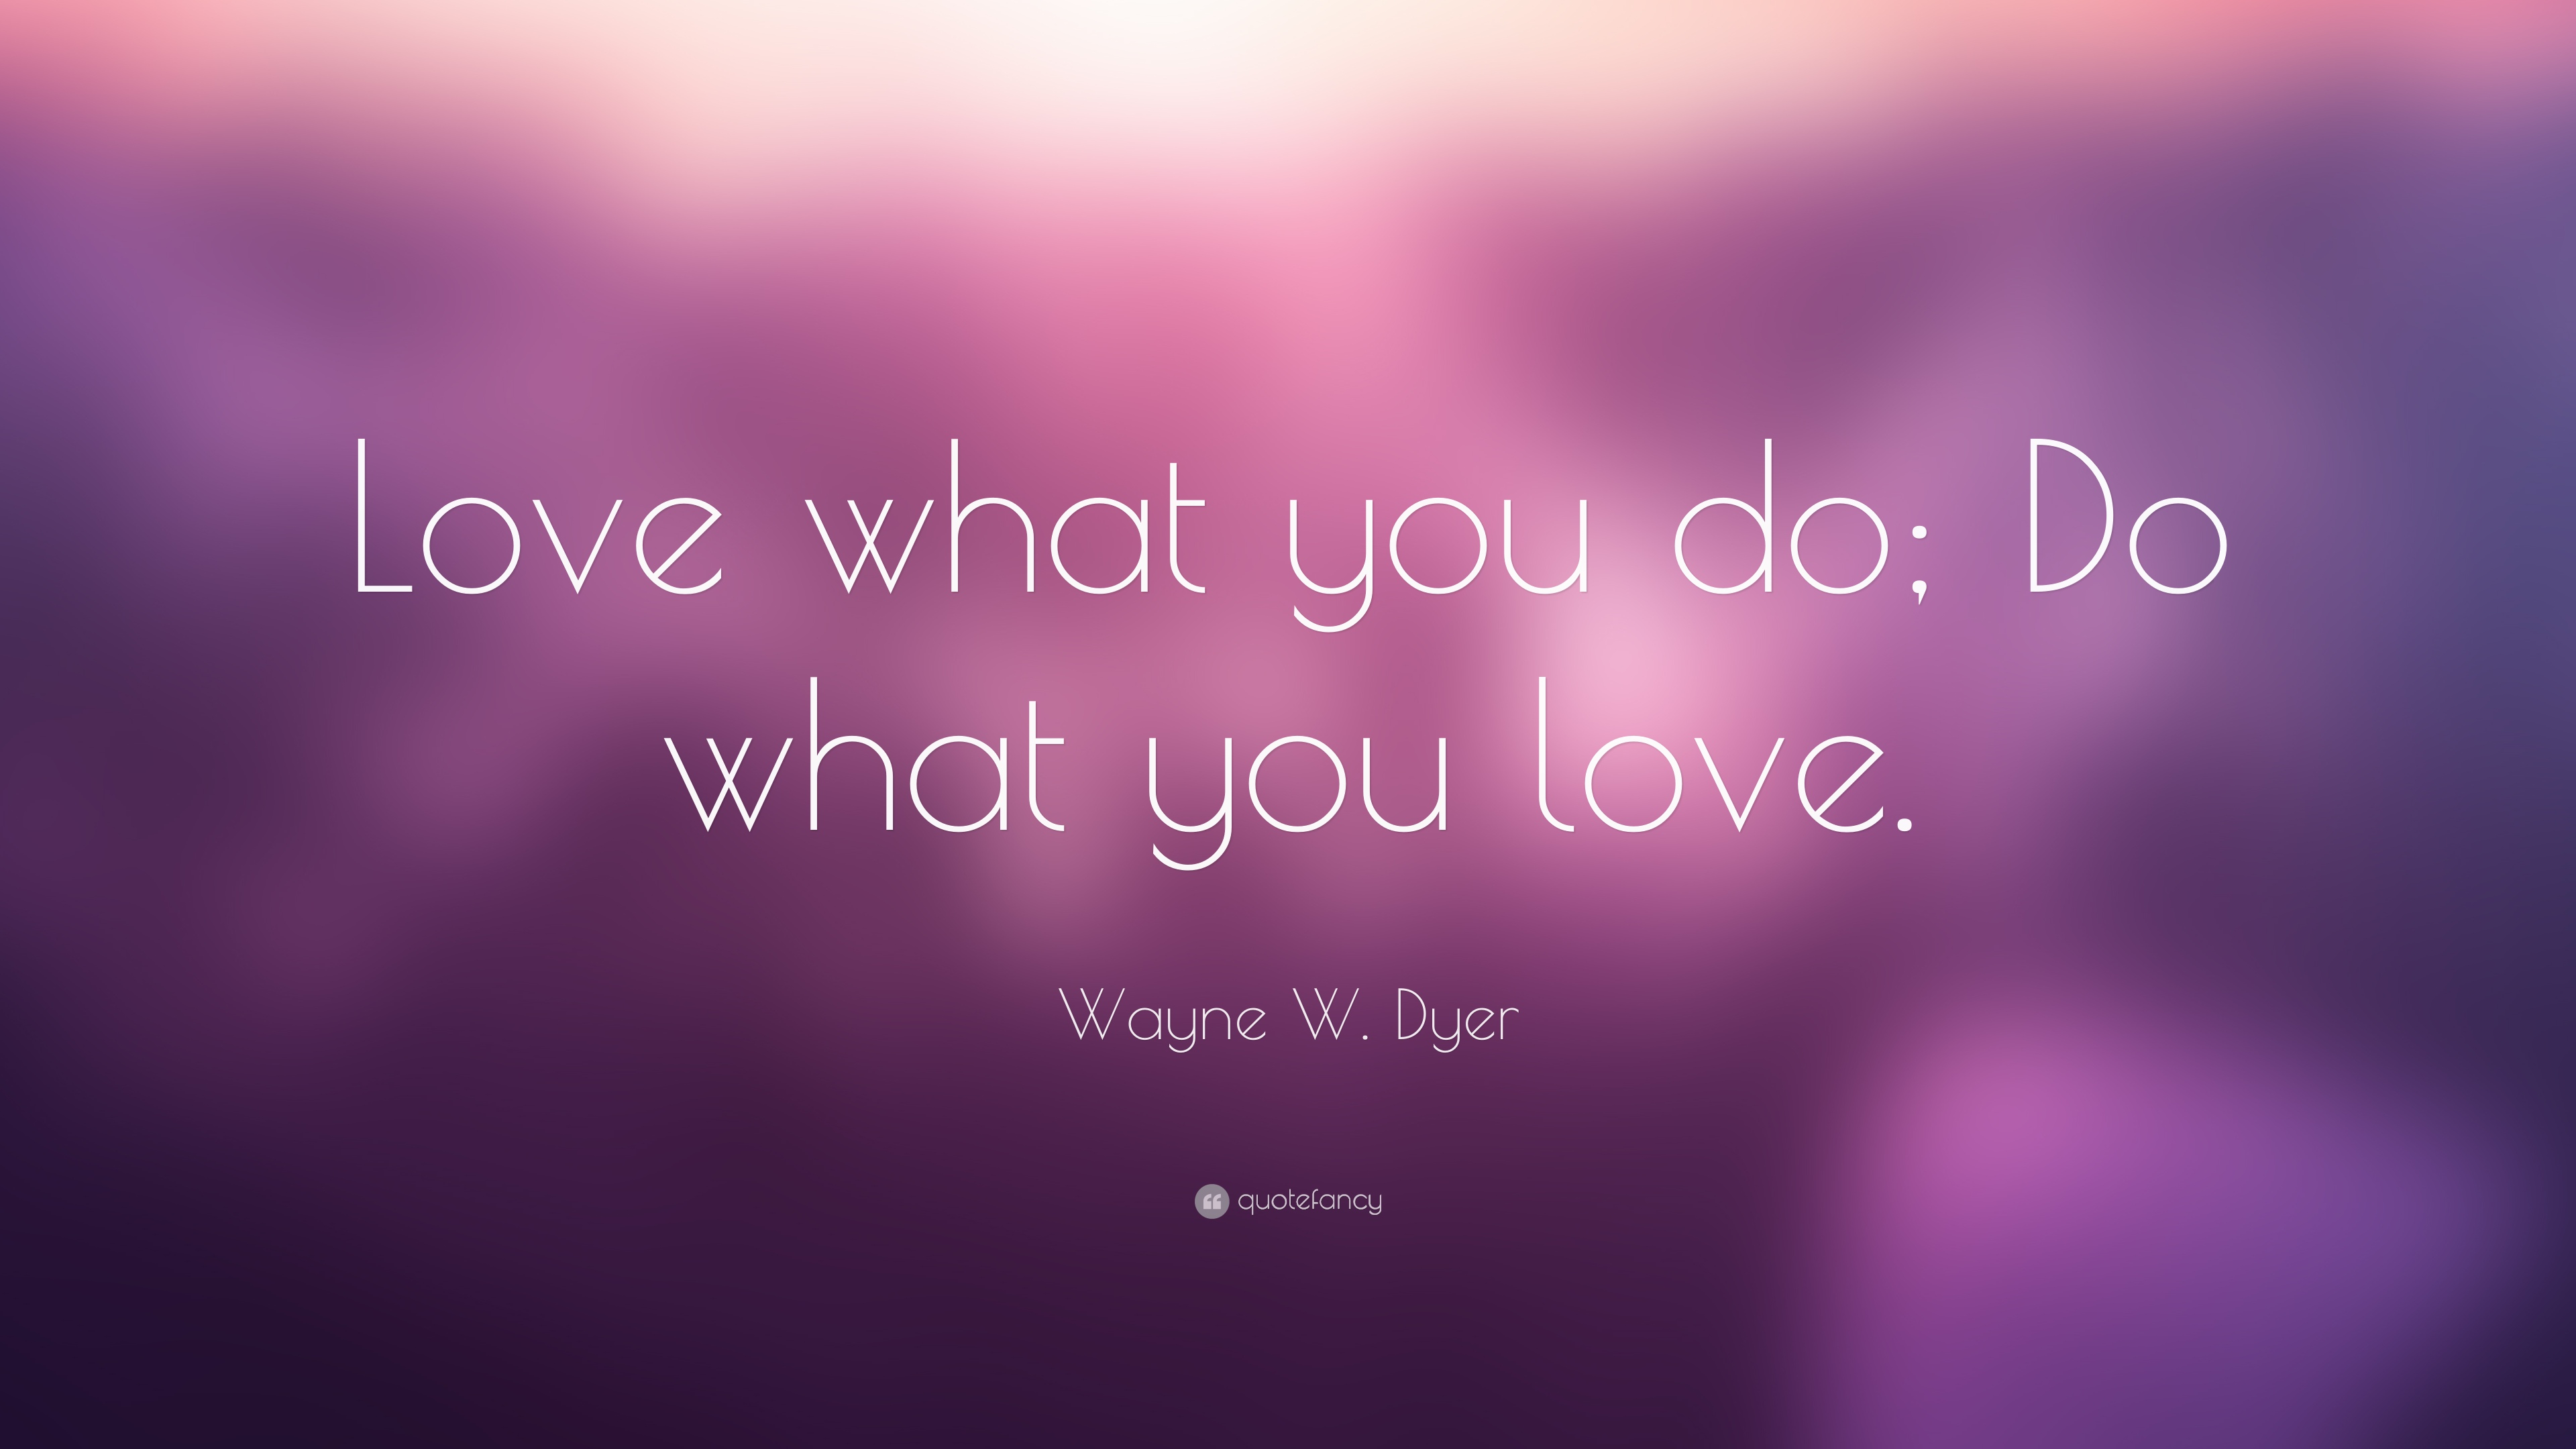 wayne w dyer quote love what you do do what you love 21 wallpapers quotefancy. Black Bedroom Furniture Sets. Home Design Ideas